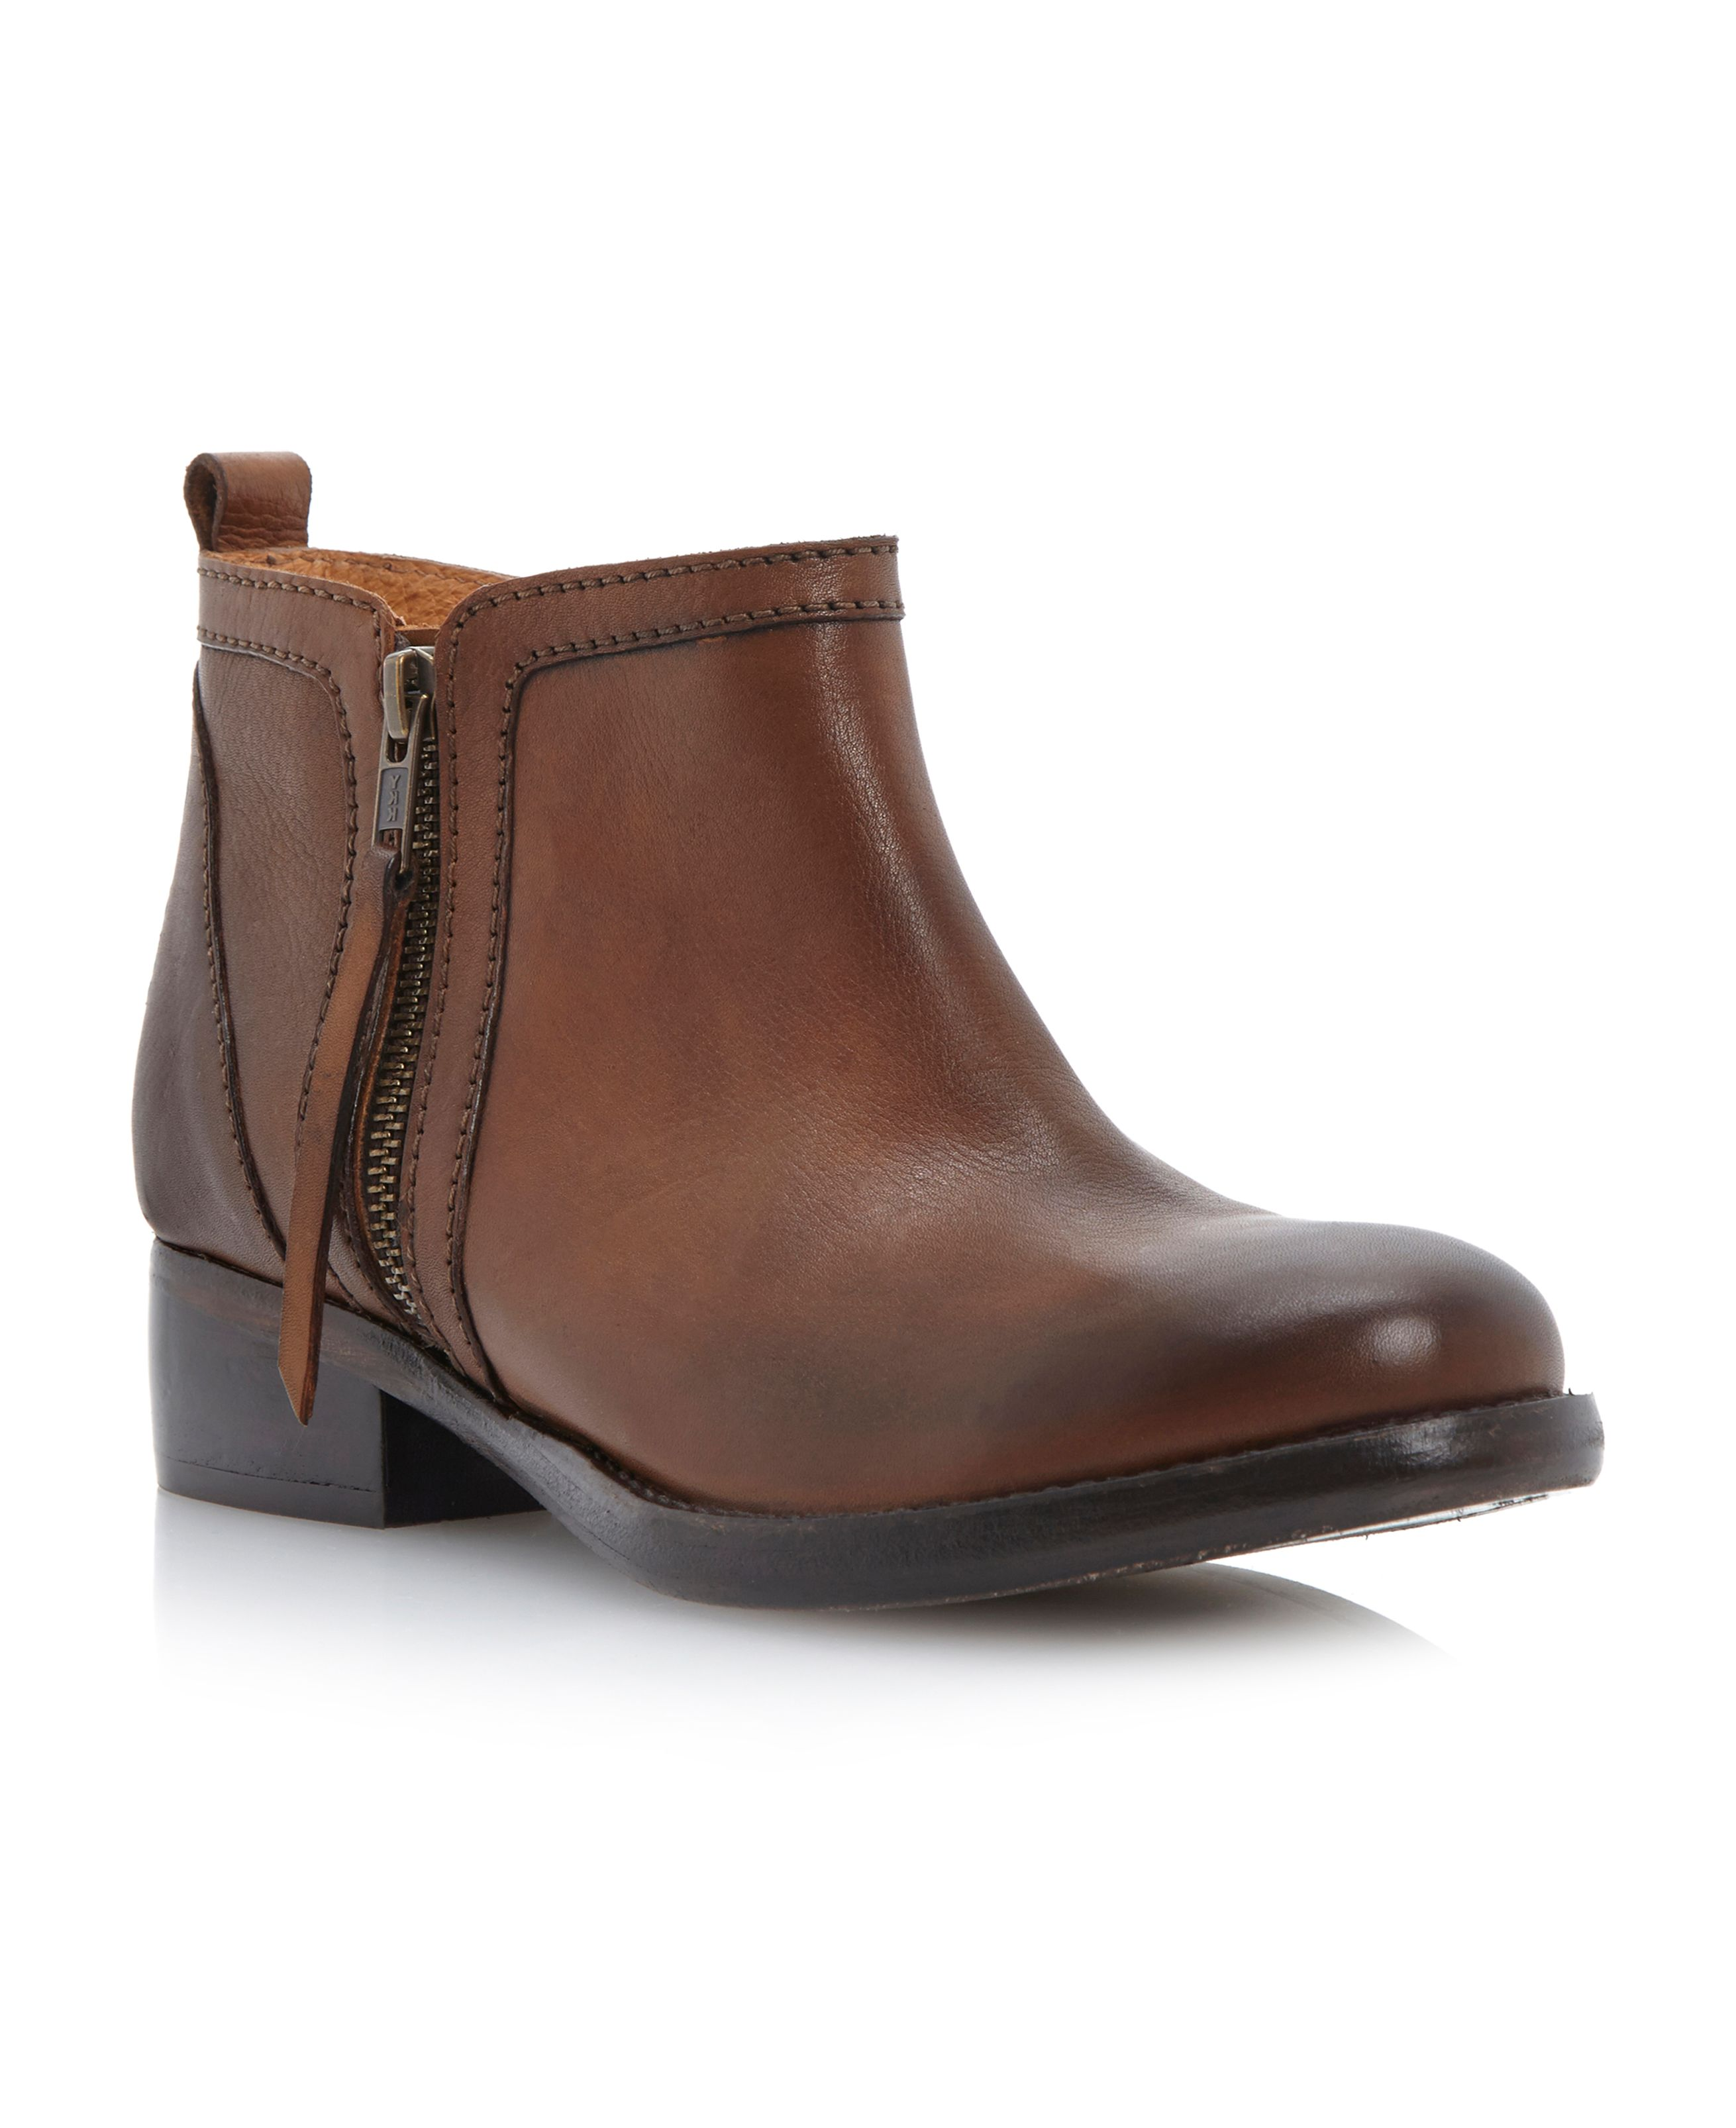 Pasco zip side burnished boots